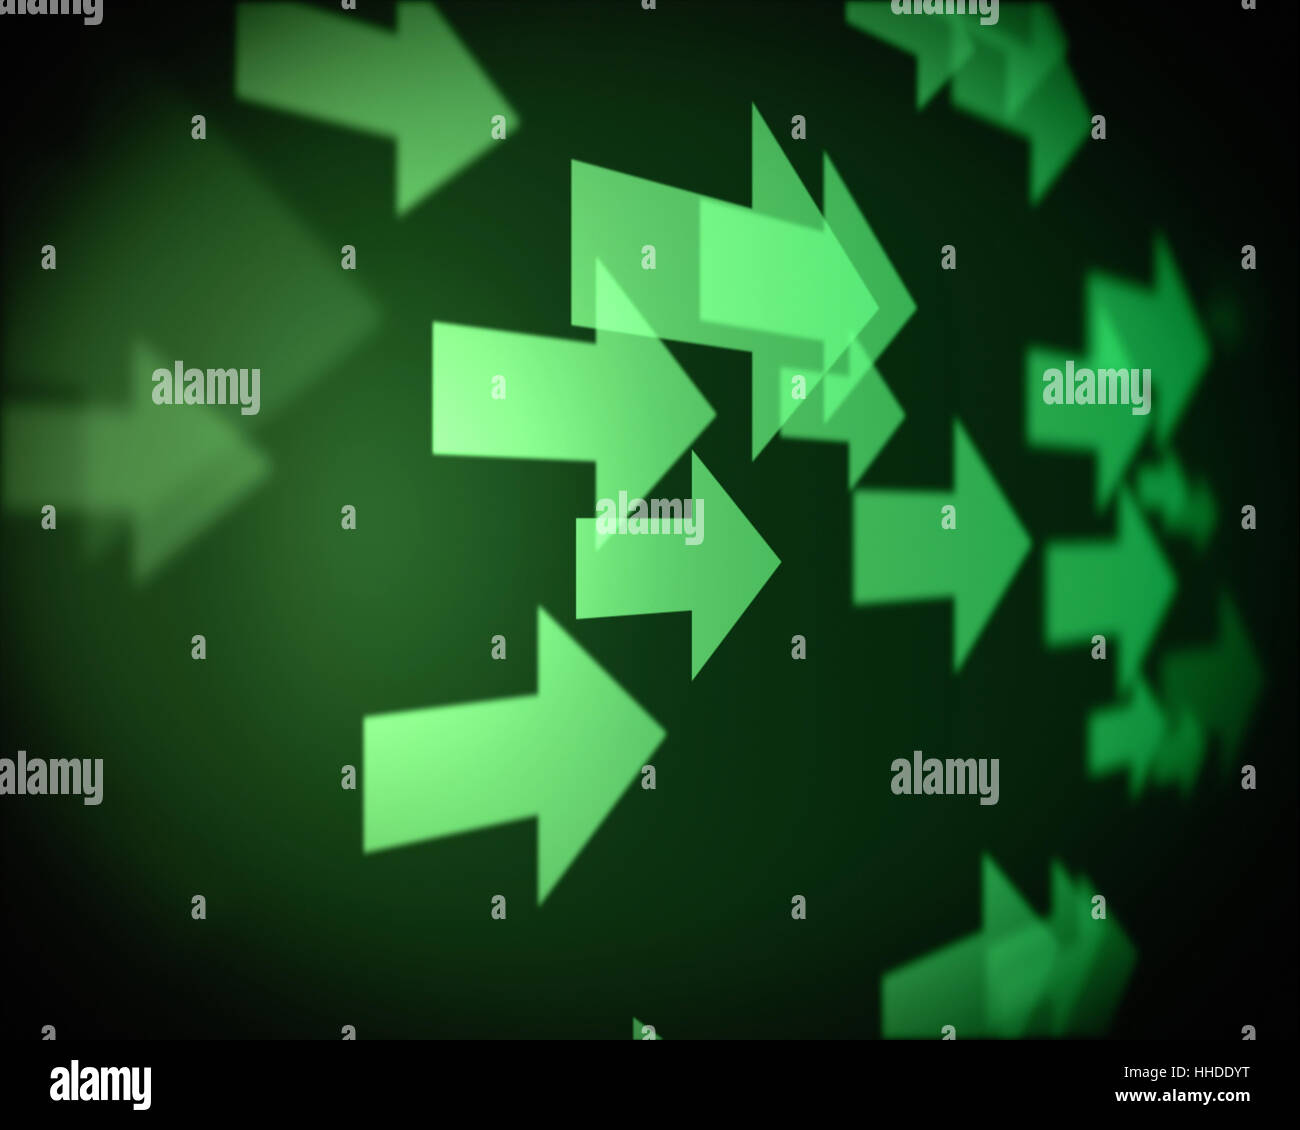 Background of multiple green arrows going on the right - Stock Image